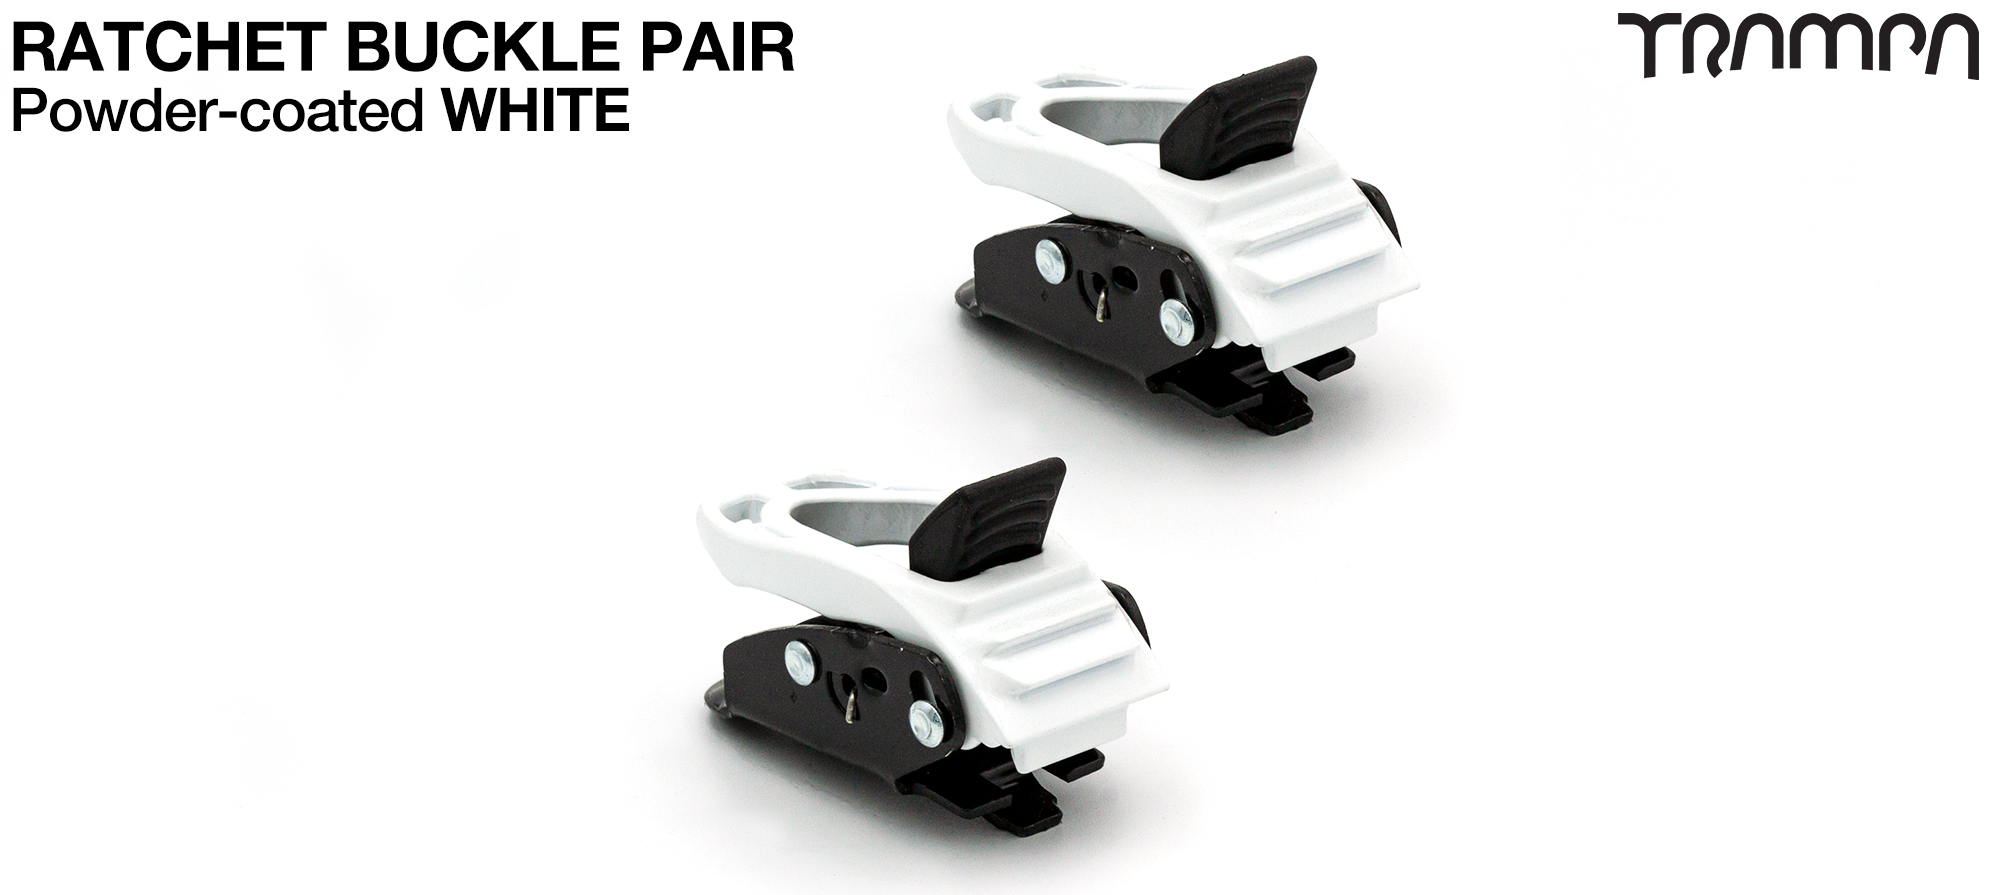 WHITE Powder Coated Ratchet Buckle (+£12.50)